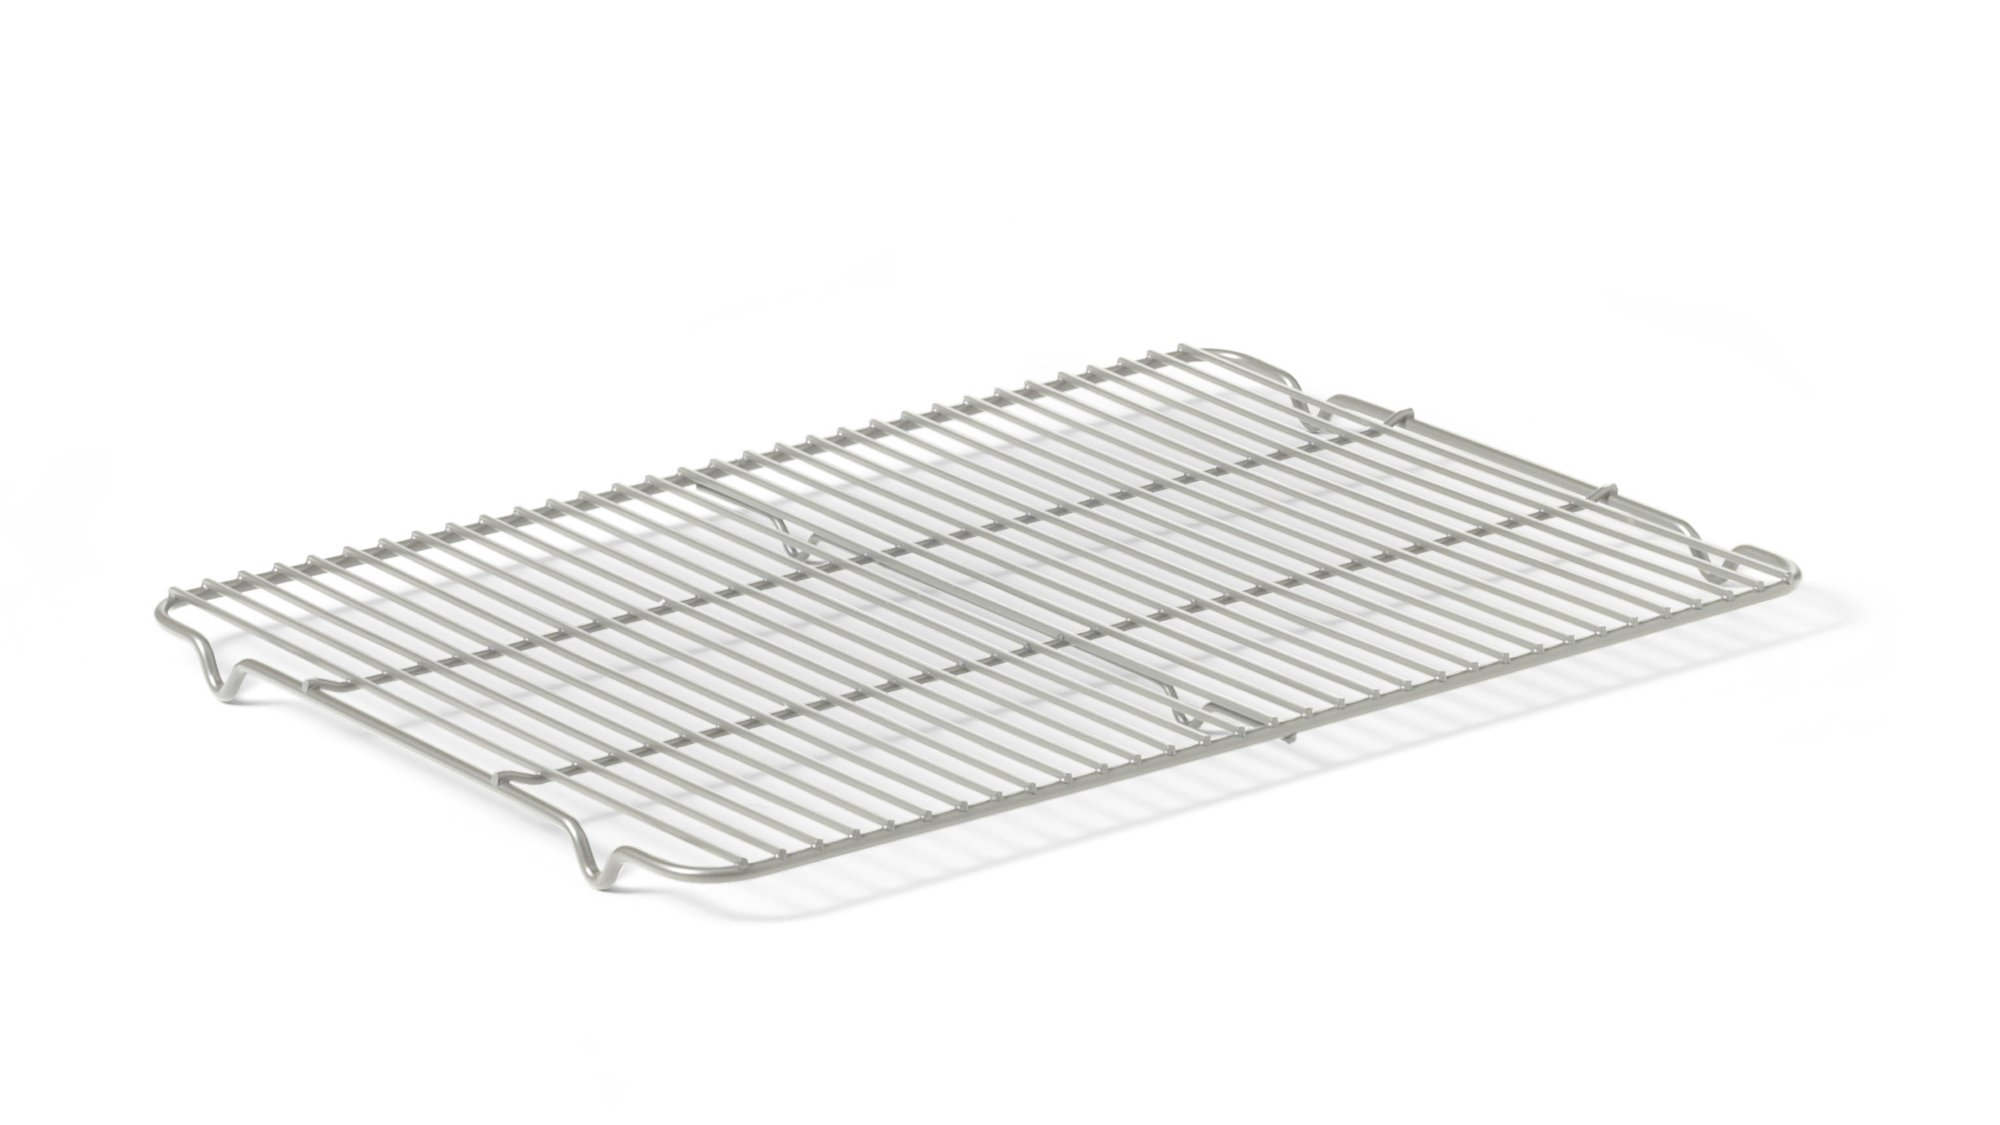 Calphalon Nonstick Bakeware 12-in. x 17-in. Cooling Rack